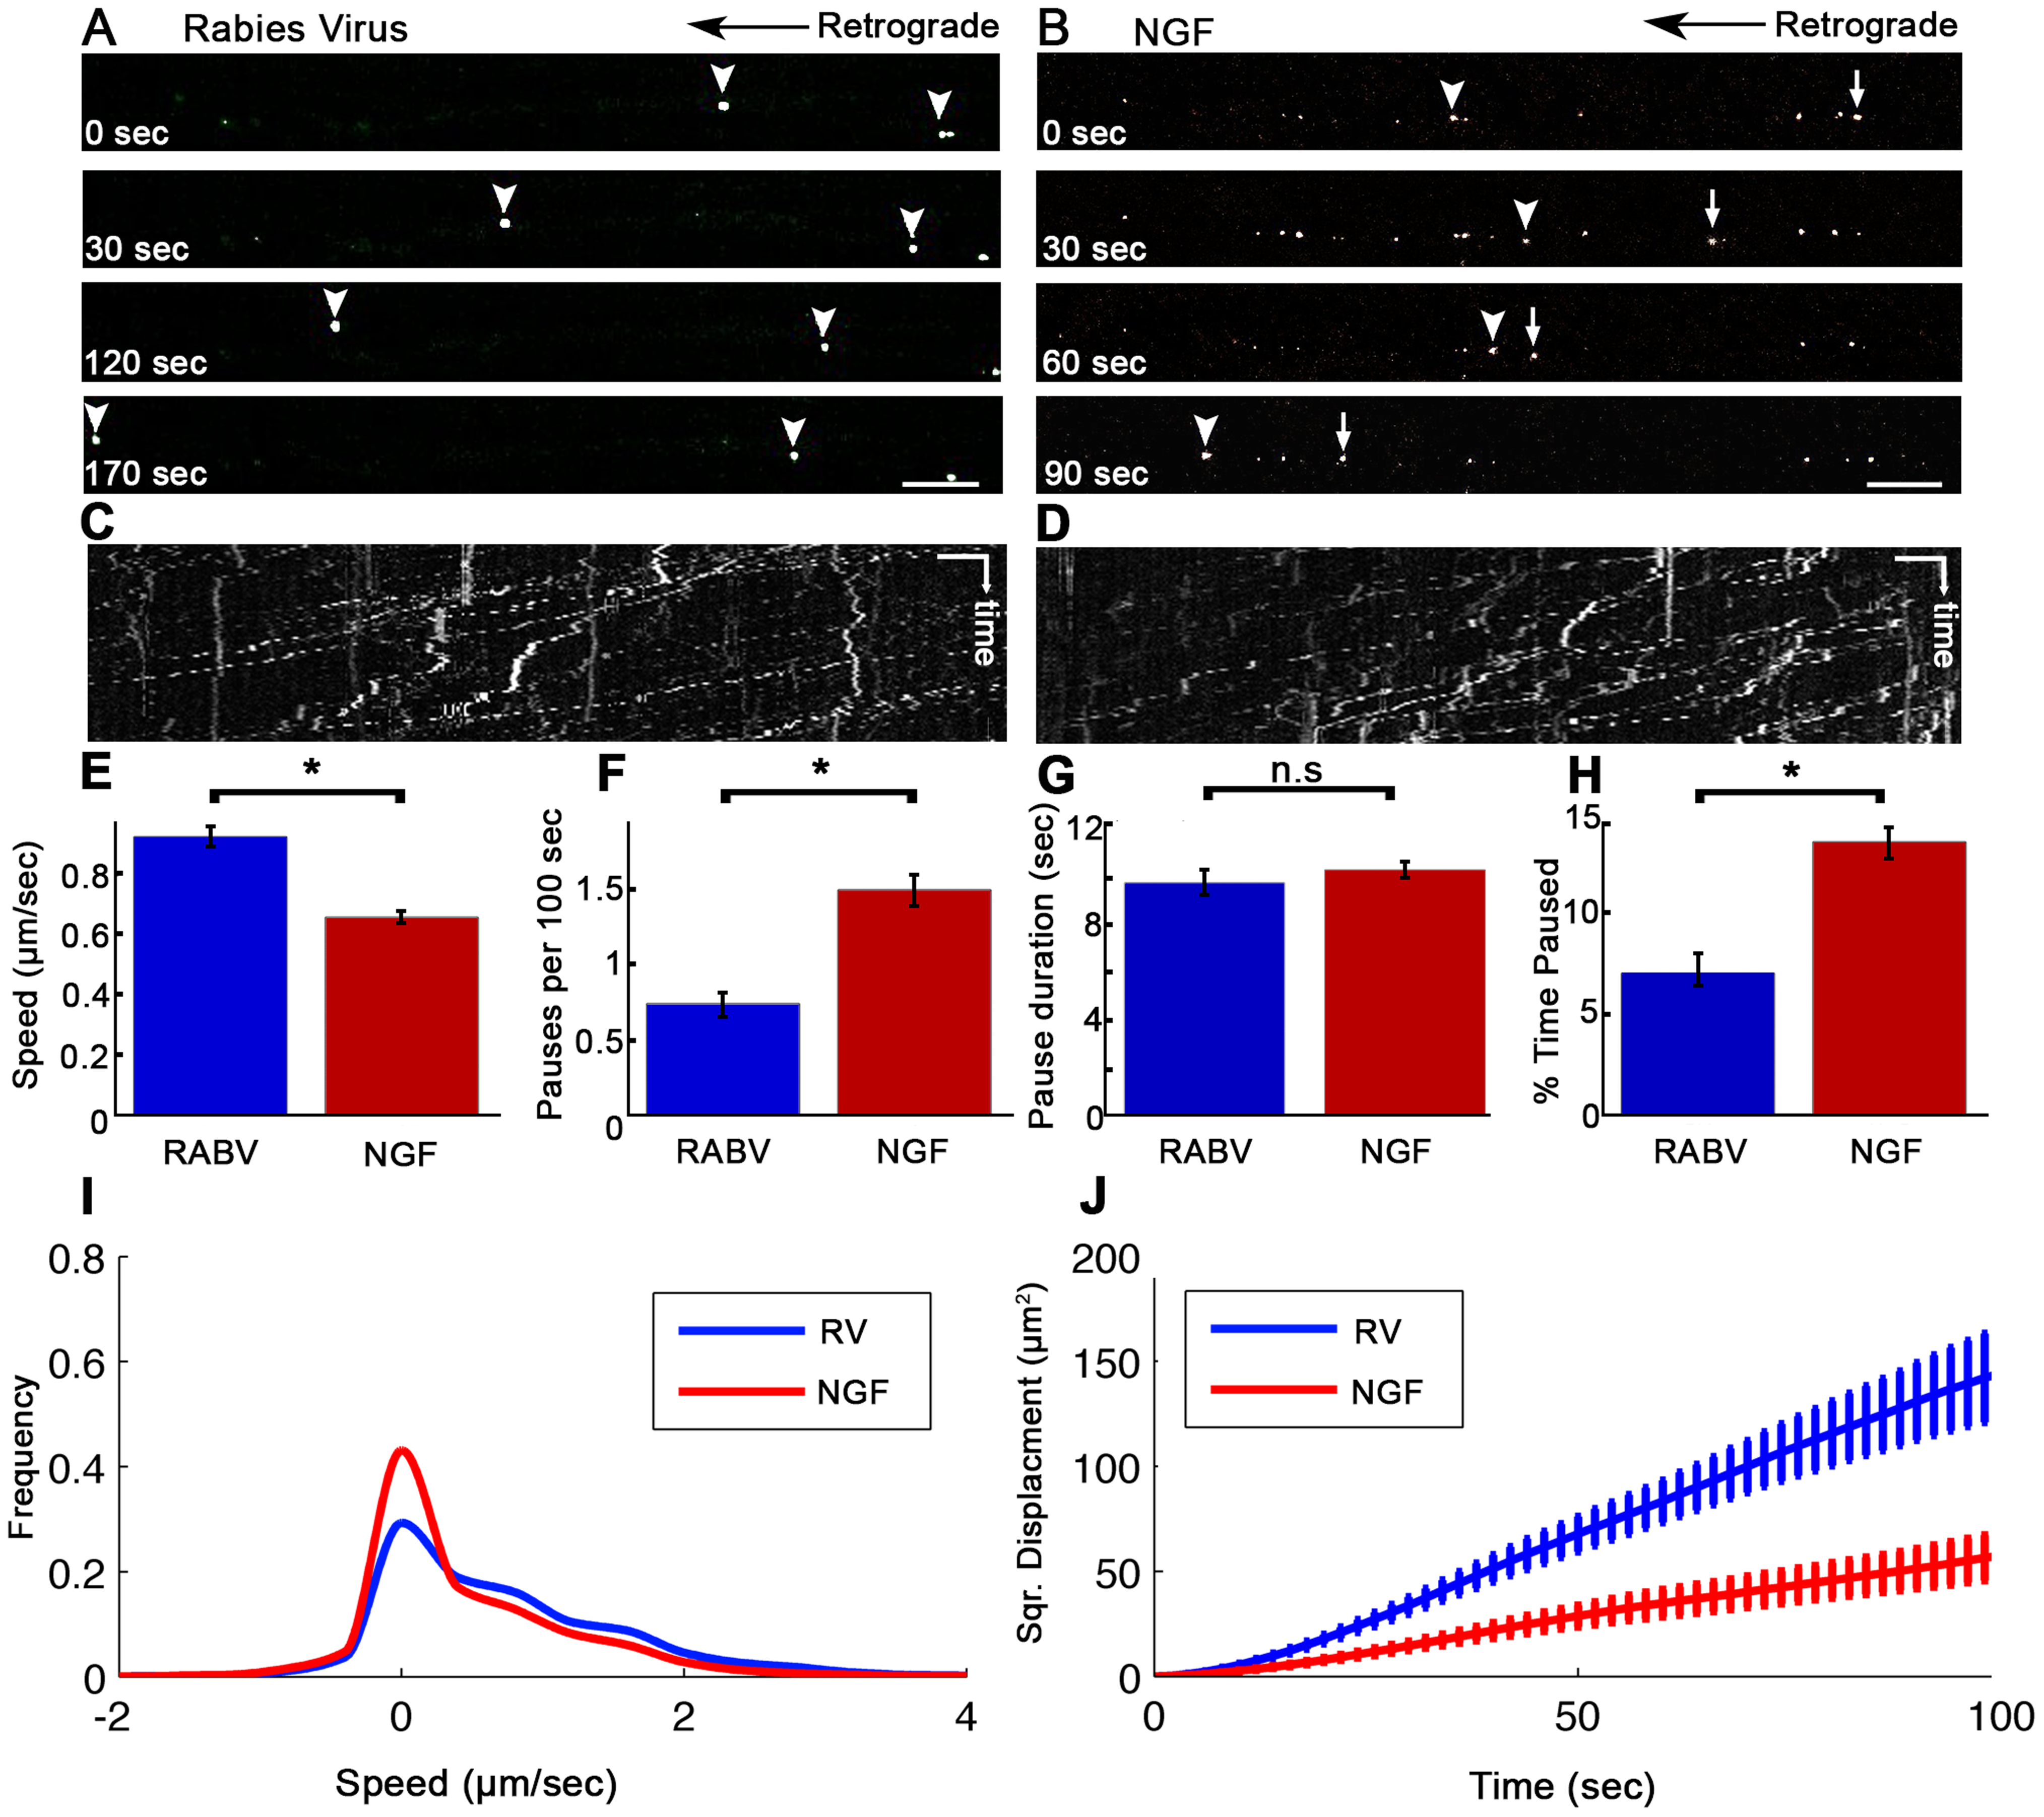 Rabies virus retrograde transport in DRG is faster and more directed than that of NGF.